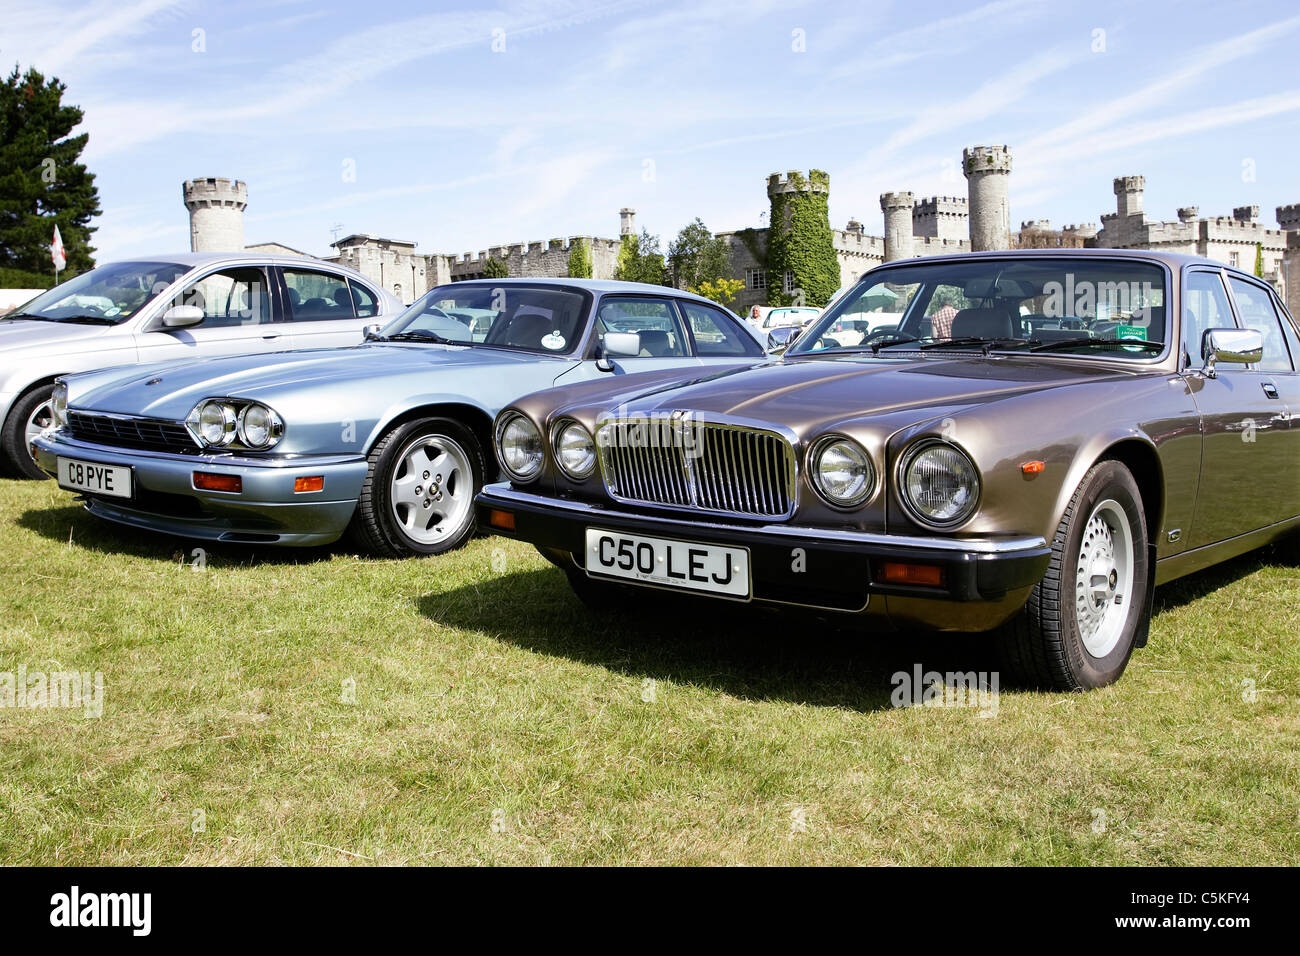 Classic Jaguar sports and saloon cars at a Classic Car Show in North Wales. Stock Photo